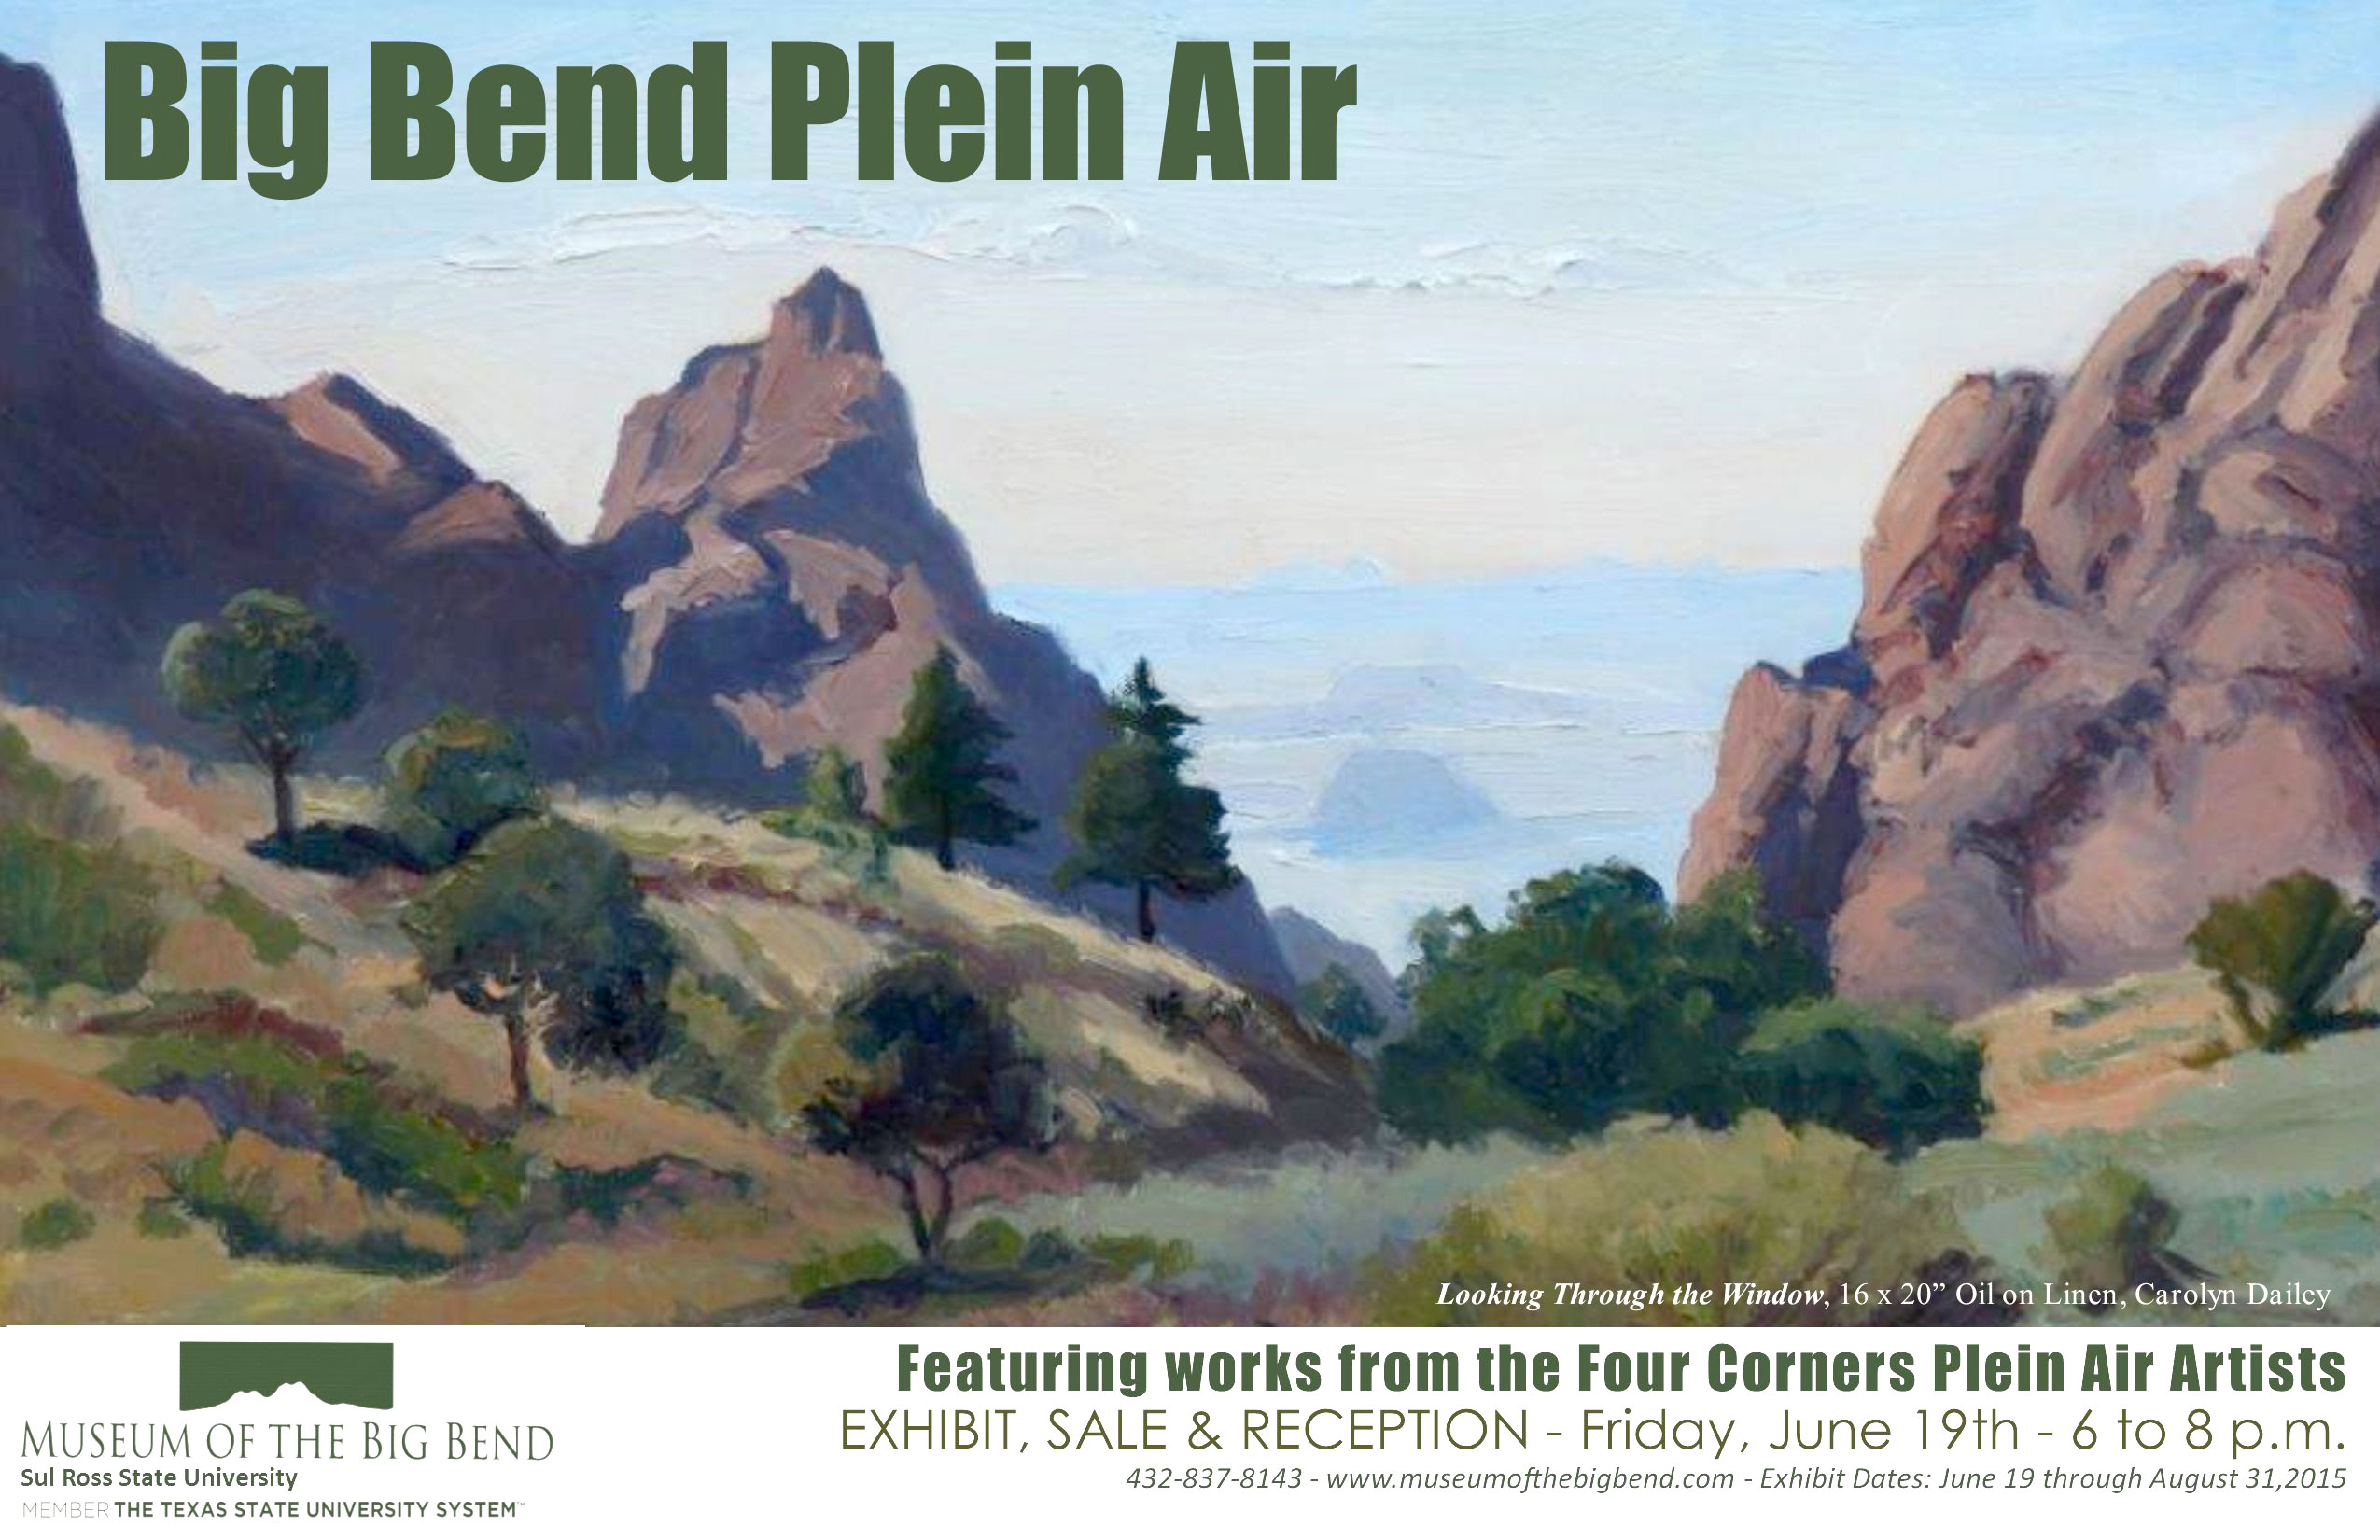 Big Bend Plein Air